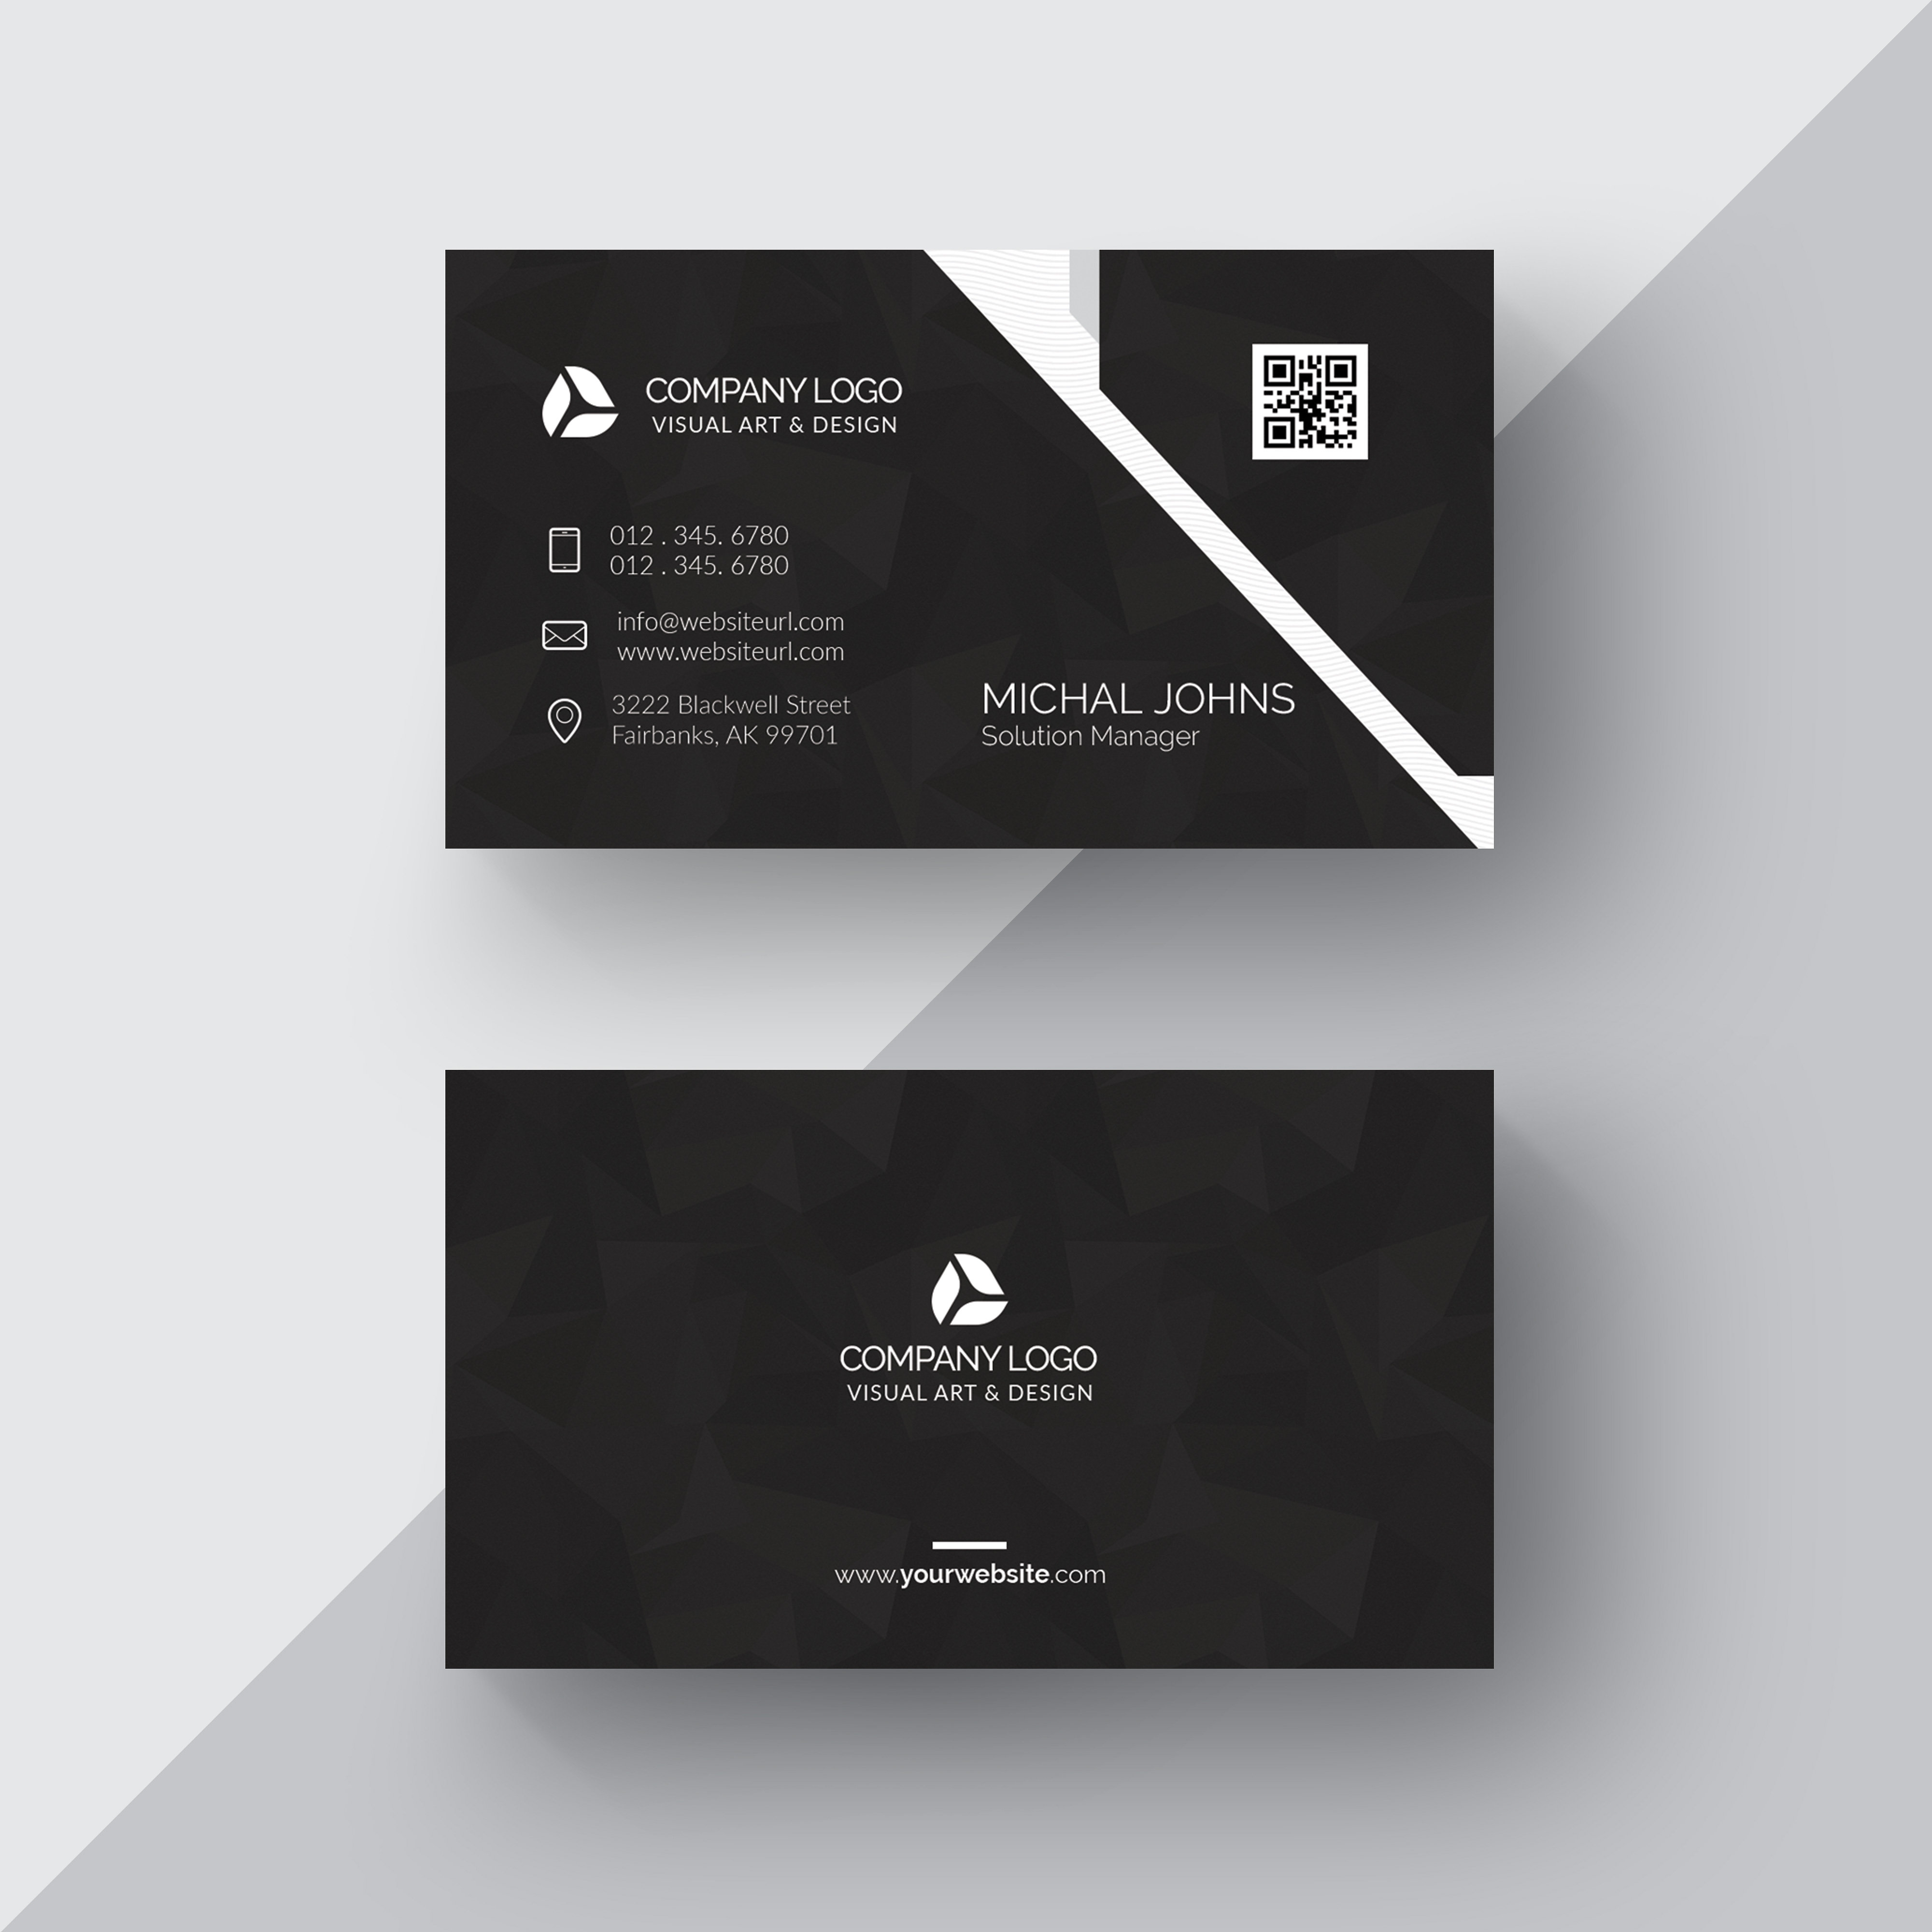 Black business cards how to write a 300 word essay essay about gontobbo organization dhaka bangladesh black business card 74d535 21f847de3b8542b2a09e587126904121mv2 d 4000 4000 s 4 magicingreecefo Choice Image